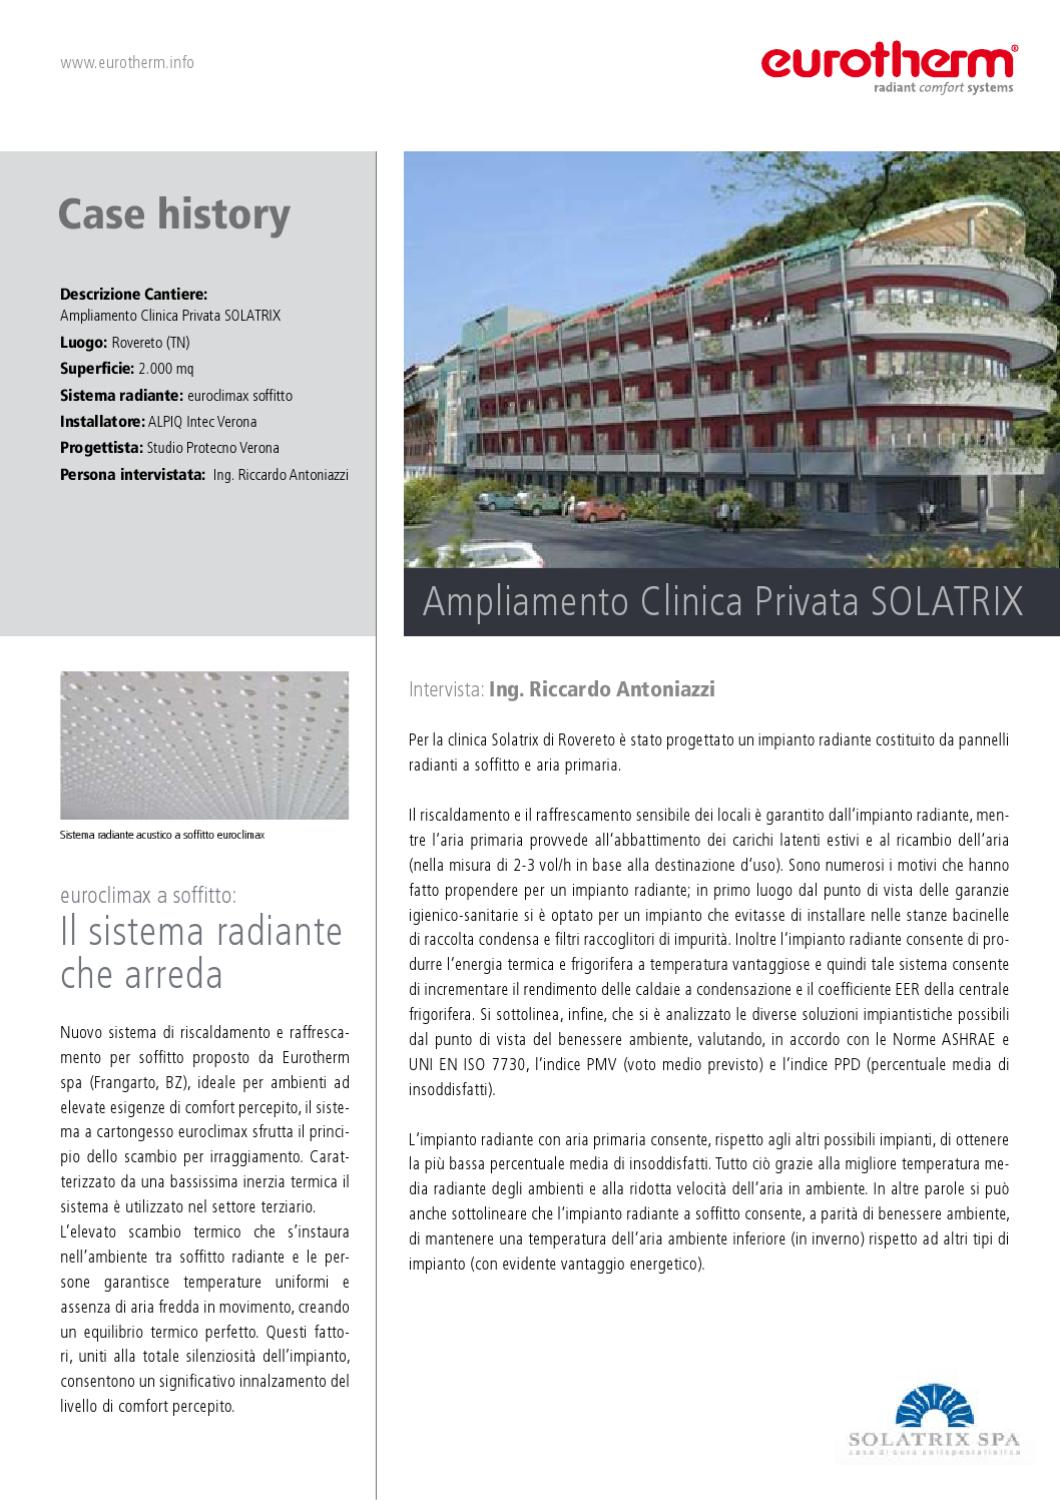 Case history by eurotherm s p a issuu for Affitti di cabina privata nel tennessee